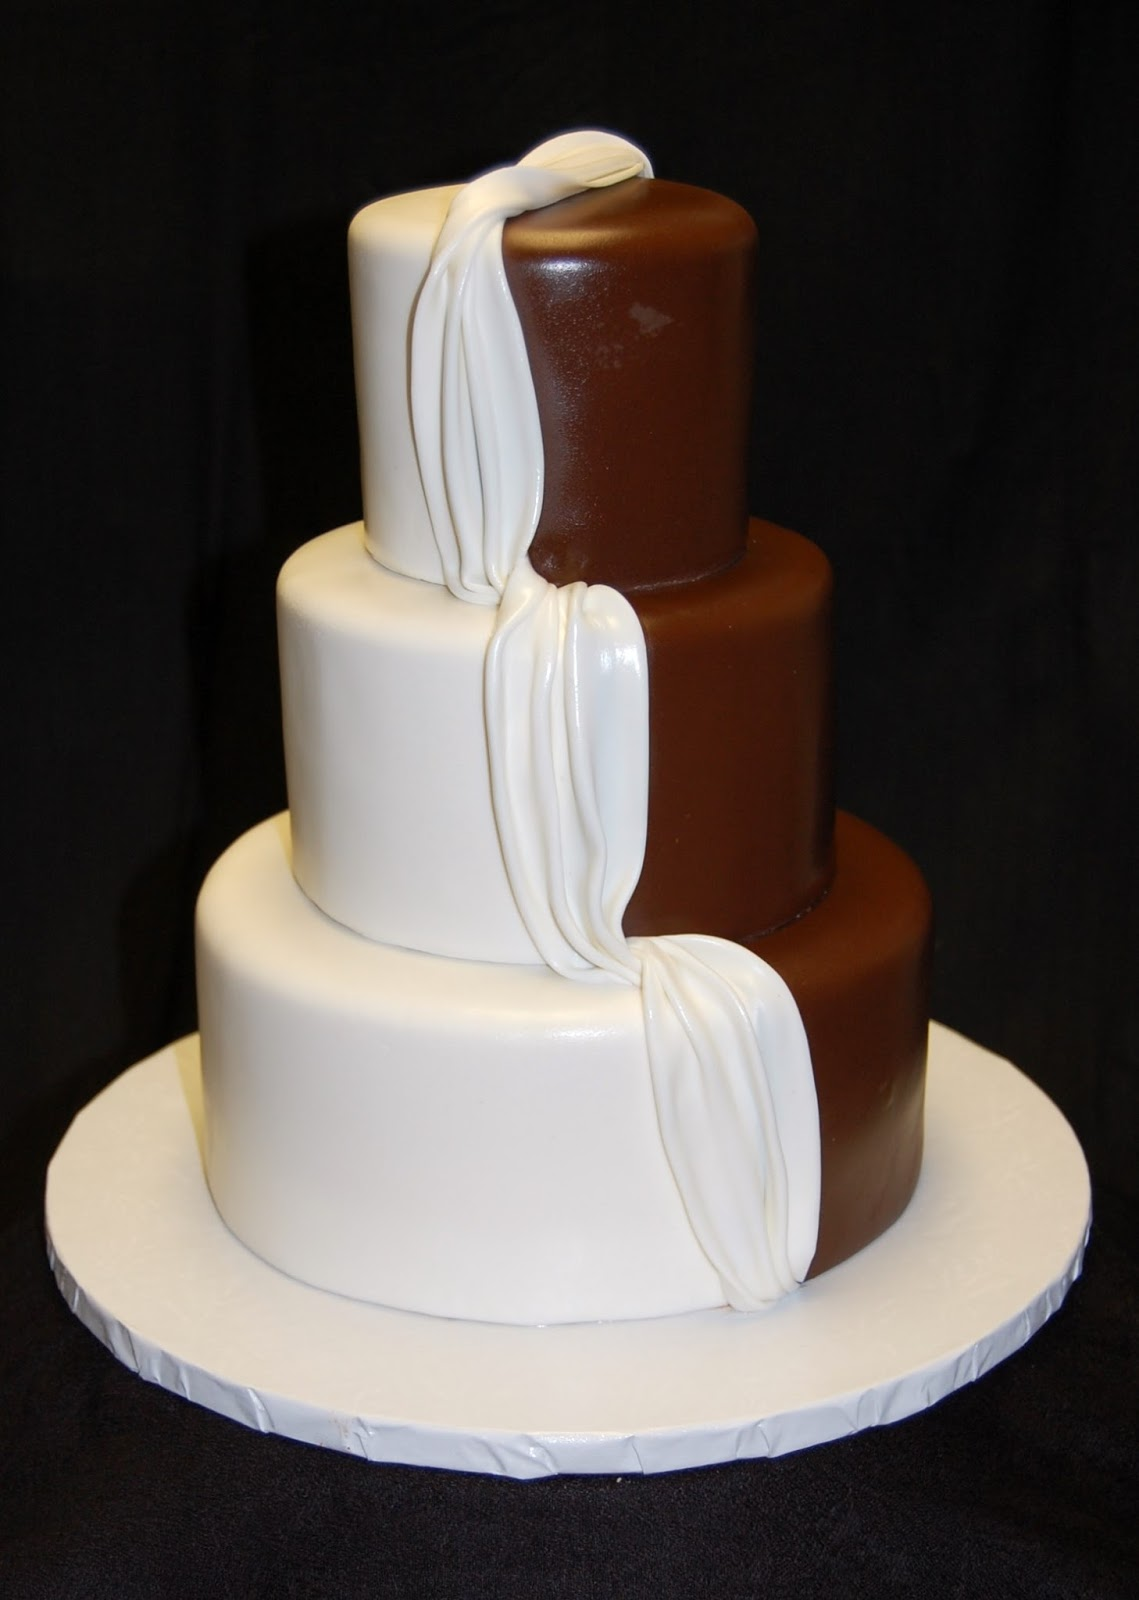 Dreas Dessert Factory His And Hers Wedding Cake - His And Hers Wedding Cake